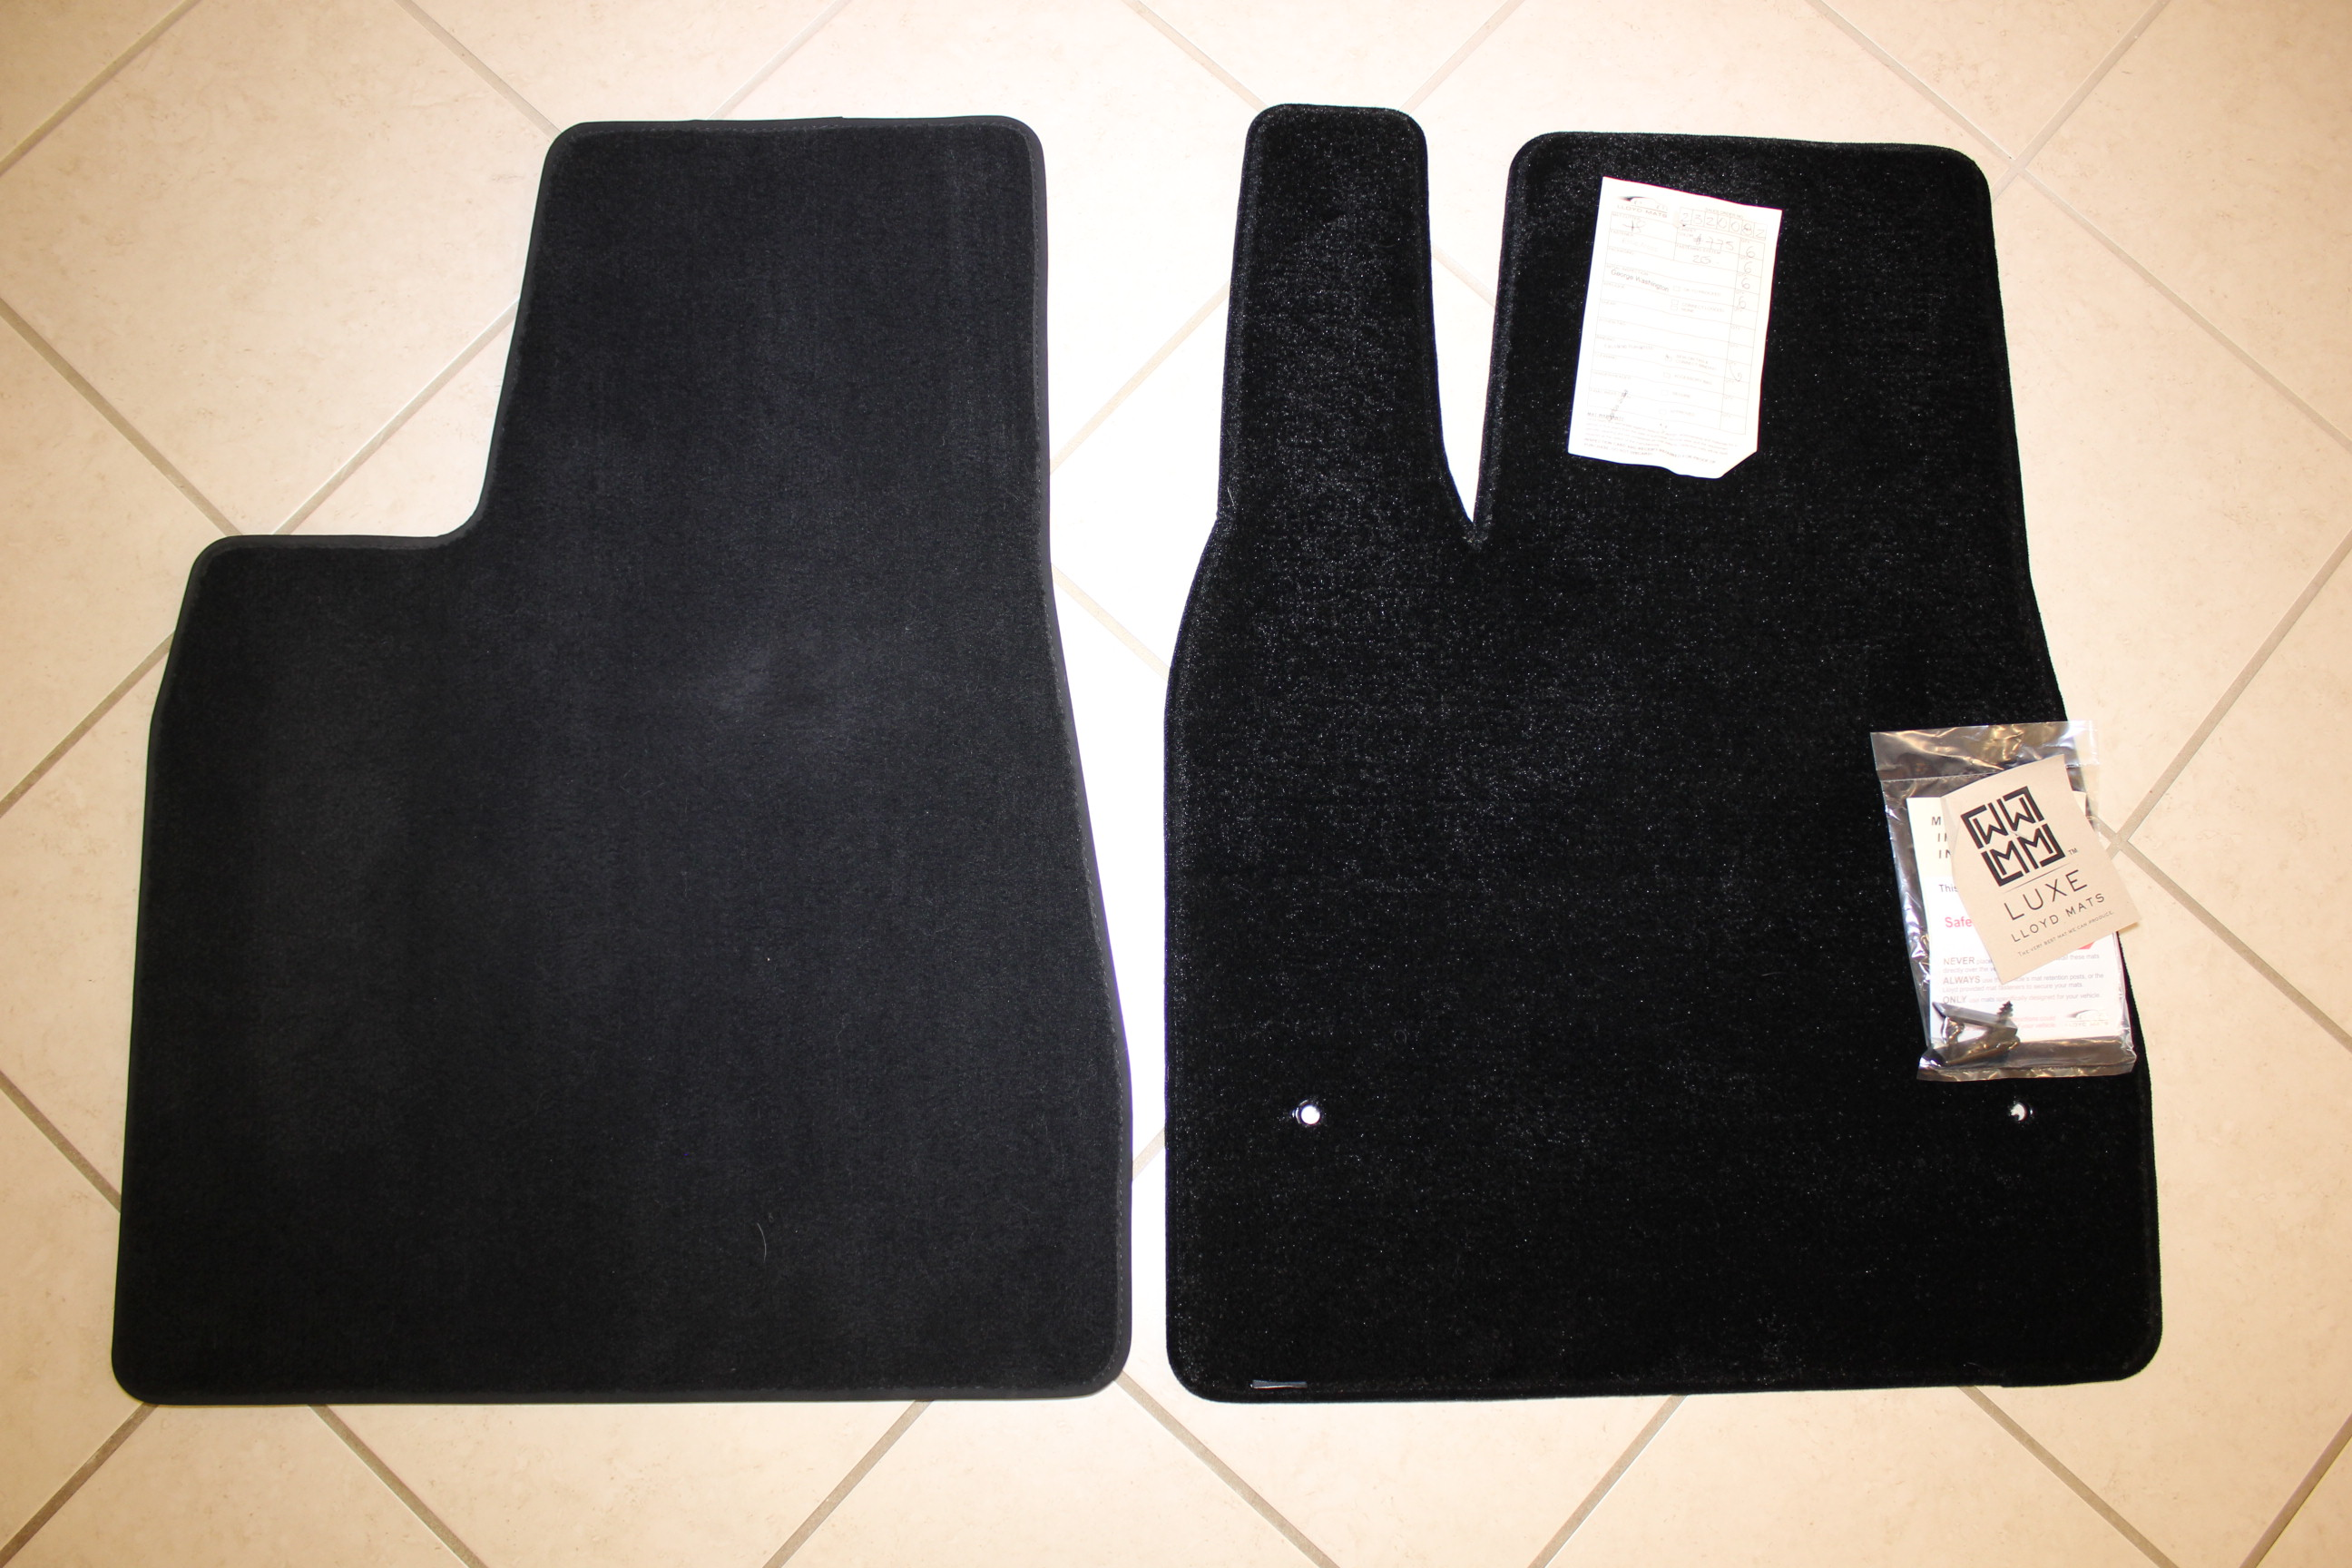 Left to Right – OEM Mats vs LUXE Mats Driverside Comparison